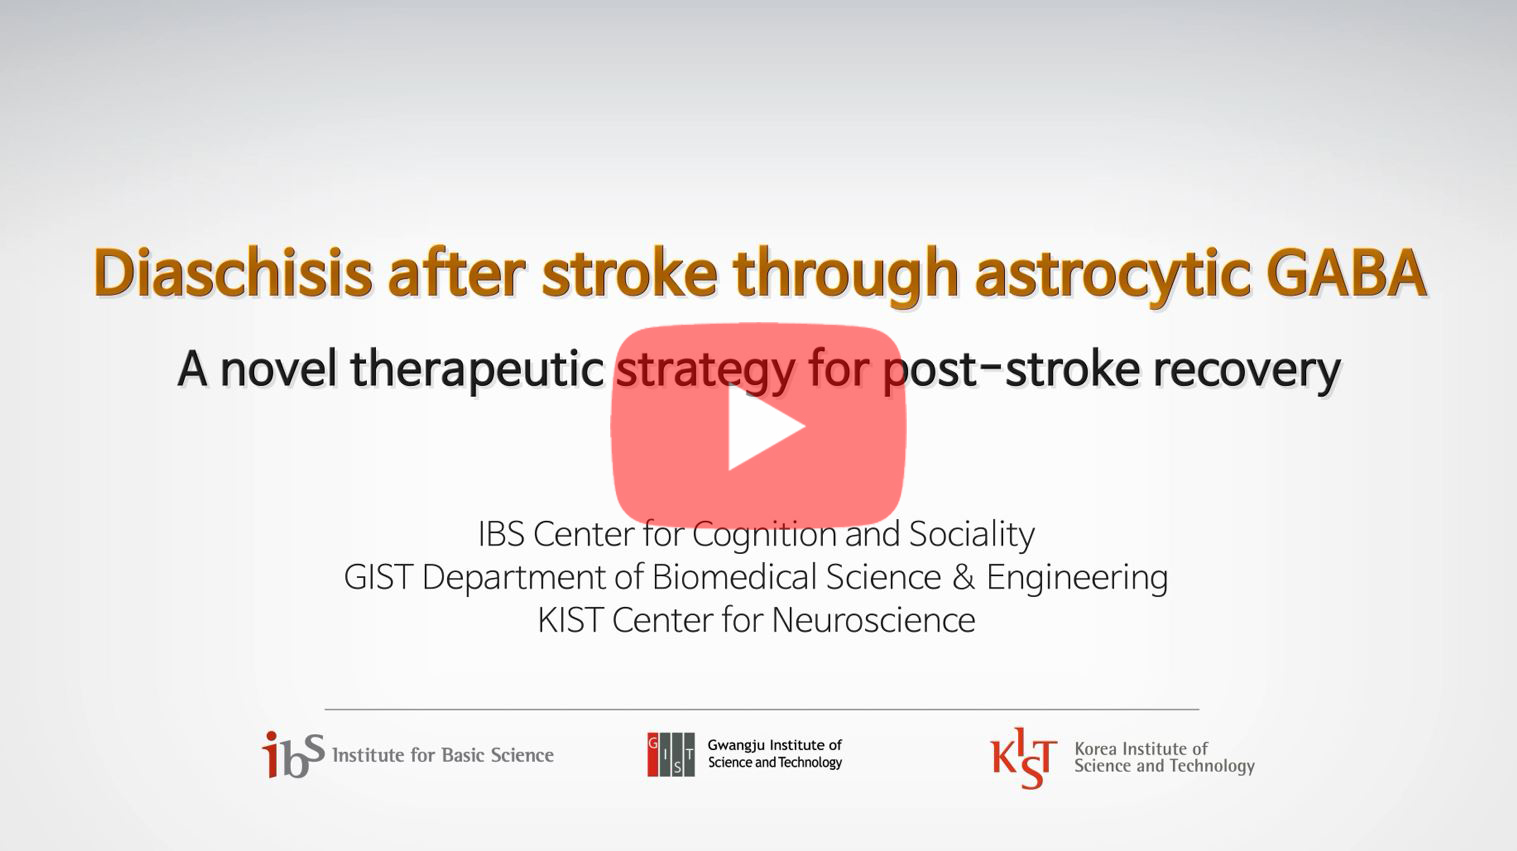 video_Diaschisis after stroke through astrocytic GABA